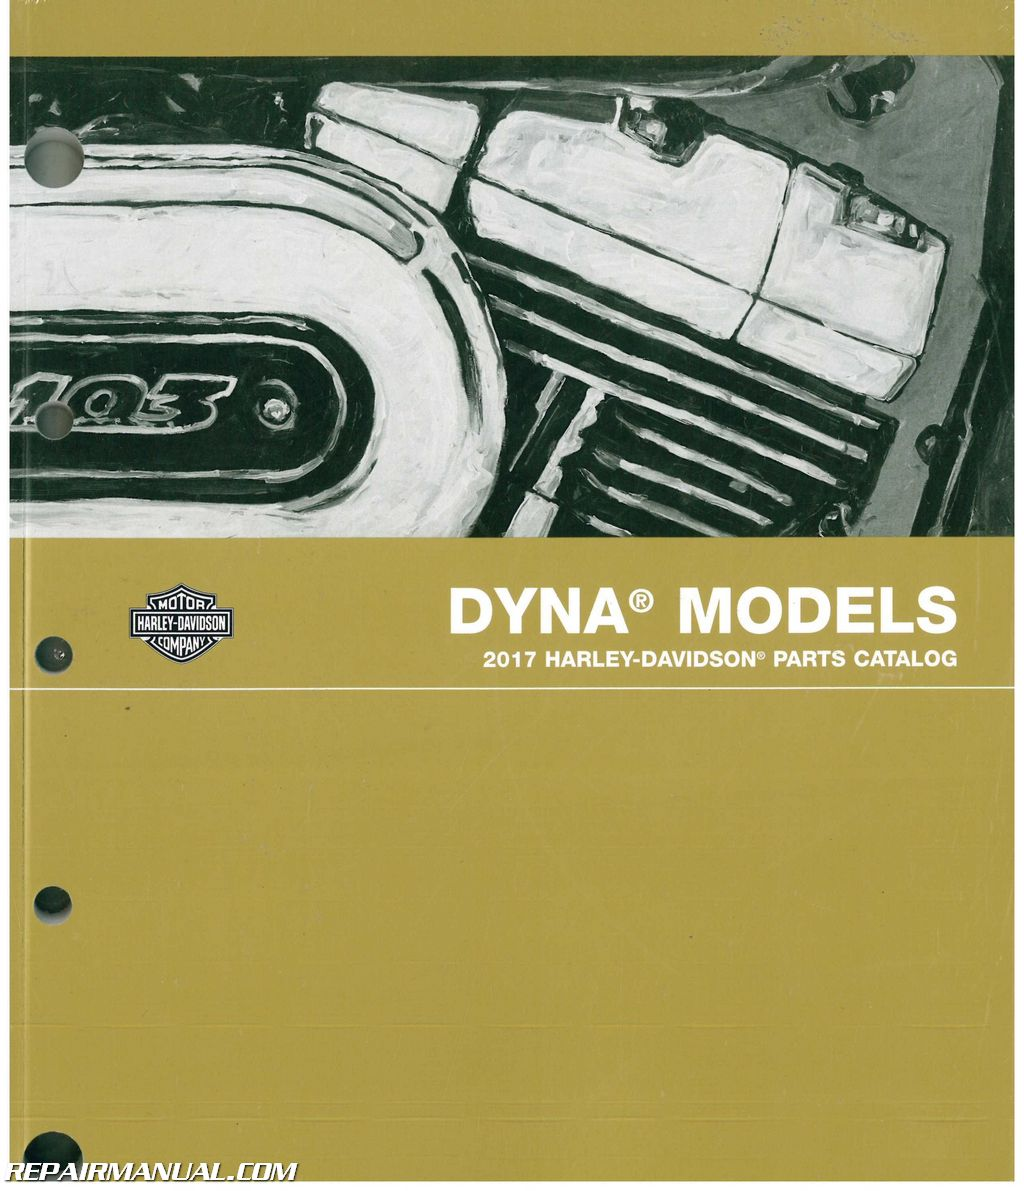 2017 Harley Davidson Dyna Motorcycle Electrical Diagnostic Manual on